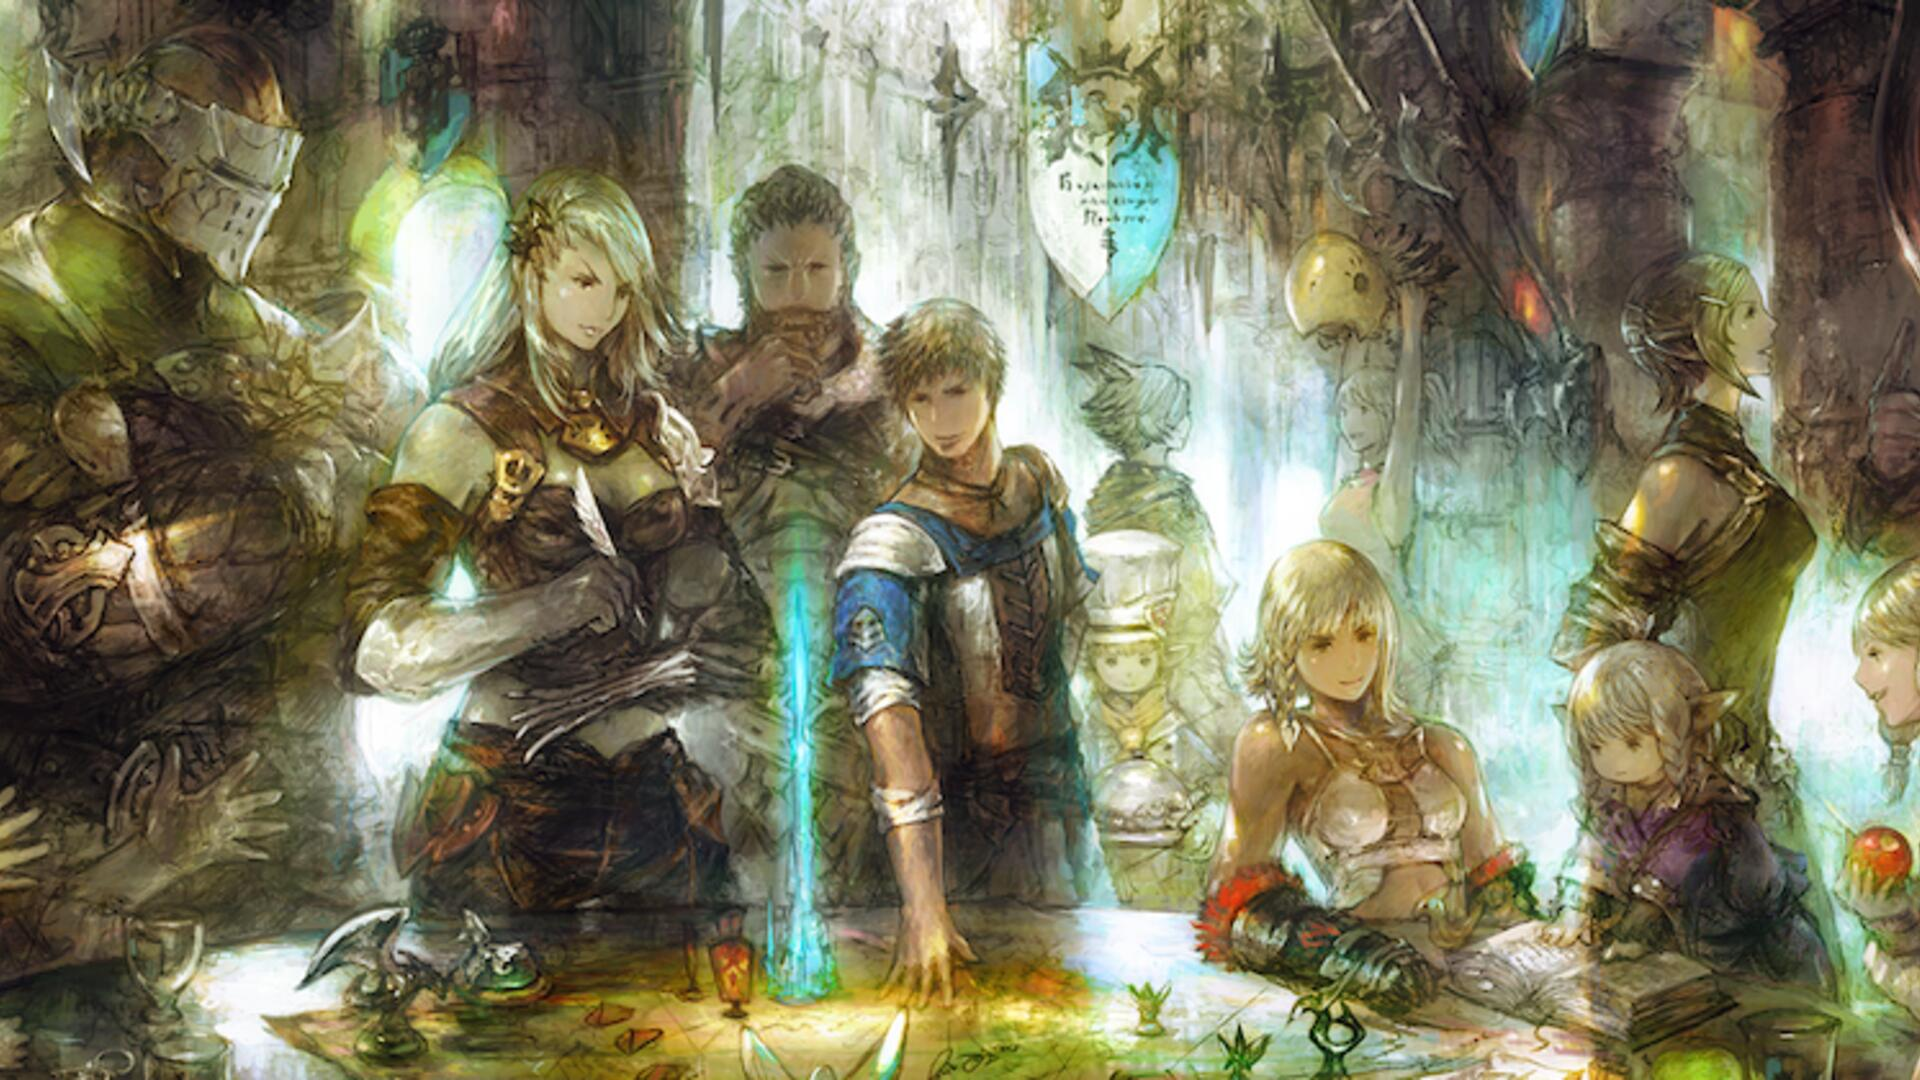 Final Fantasy XIV's PS3-to-PS4 Upgrade Program Launches